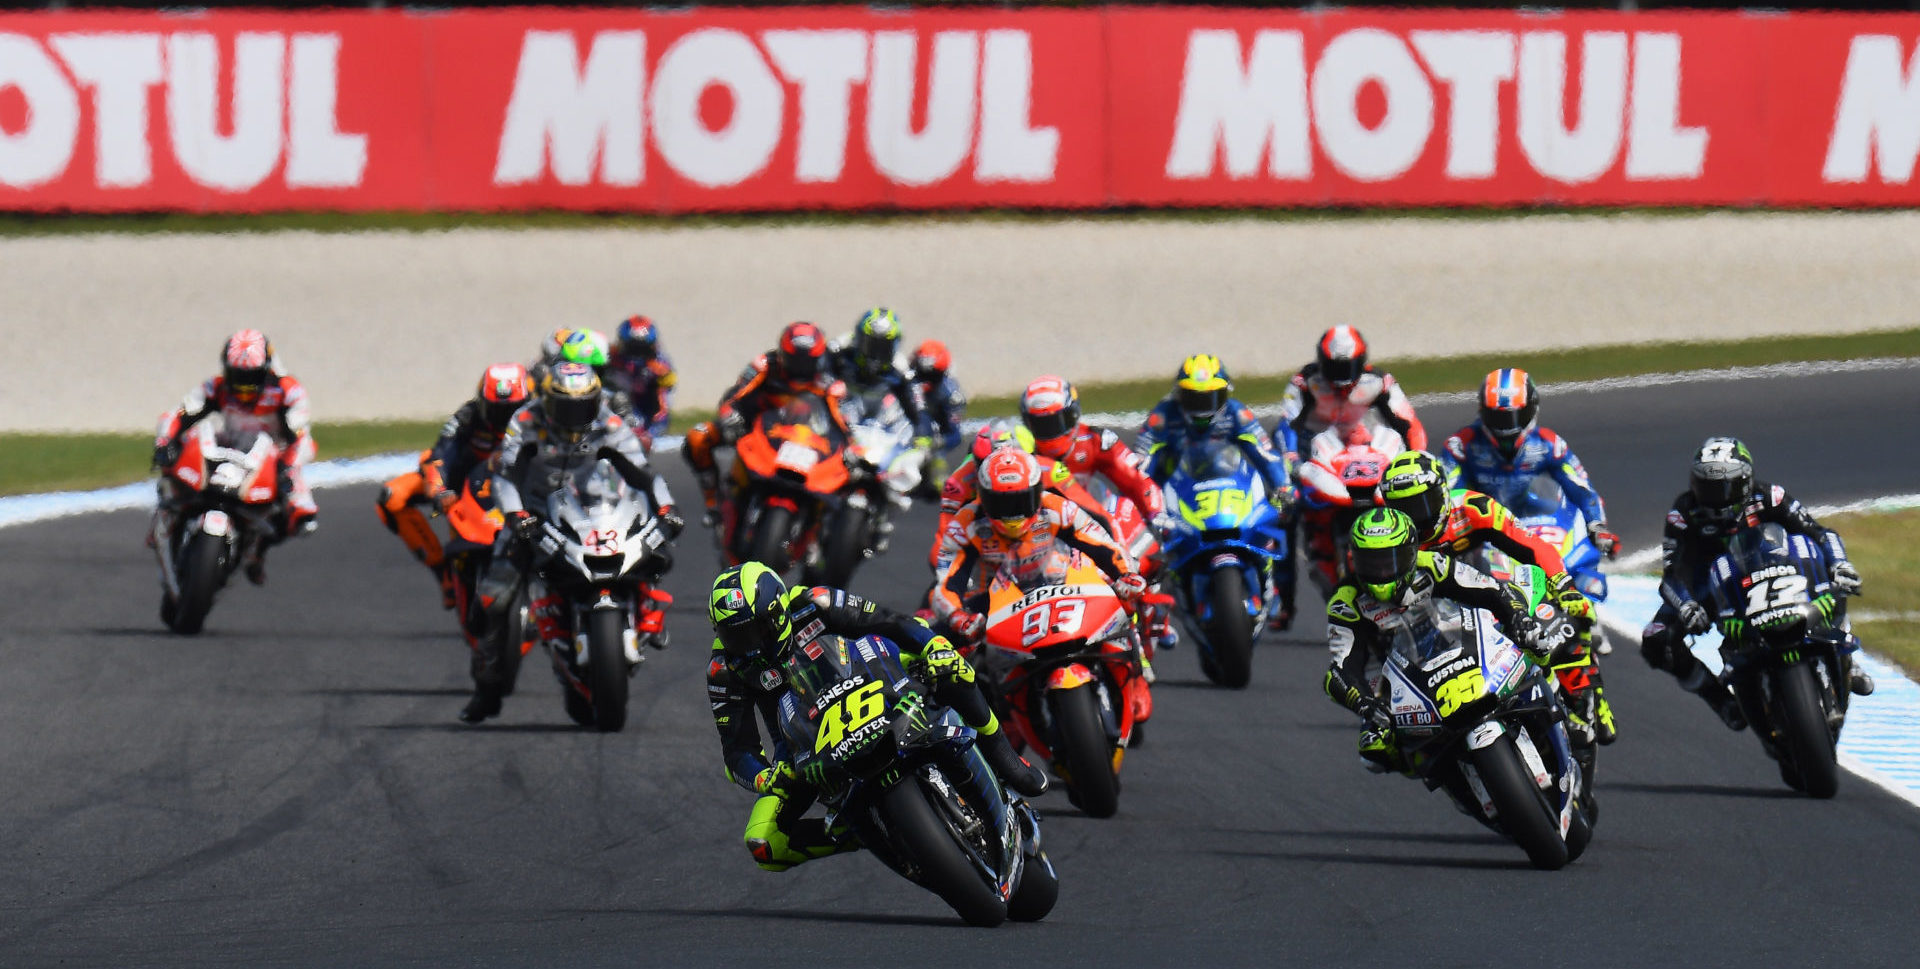 The start of the MotoGP race at Phillip Island. Photo courtesy of Michelin.